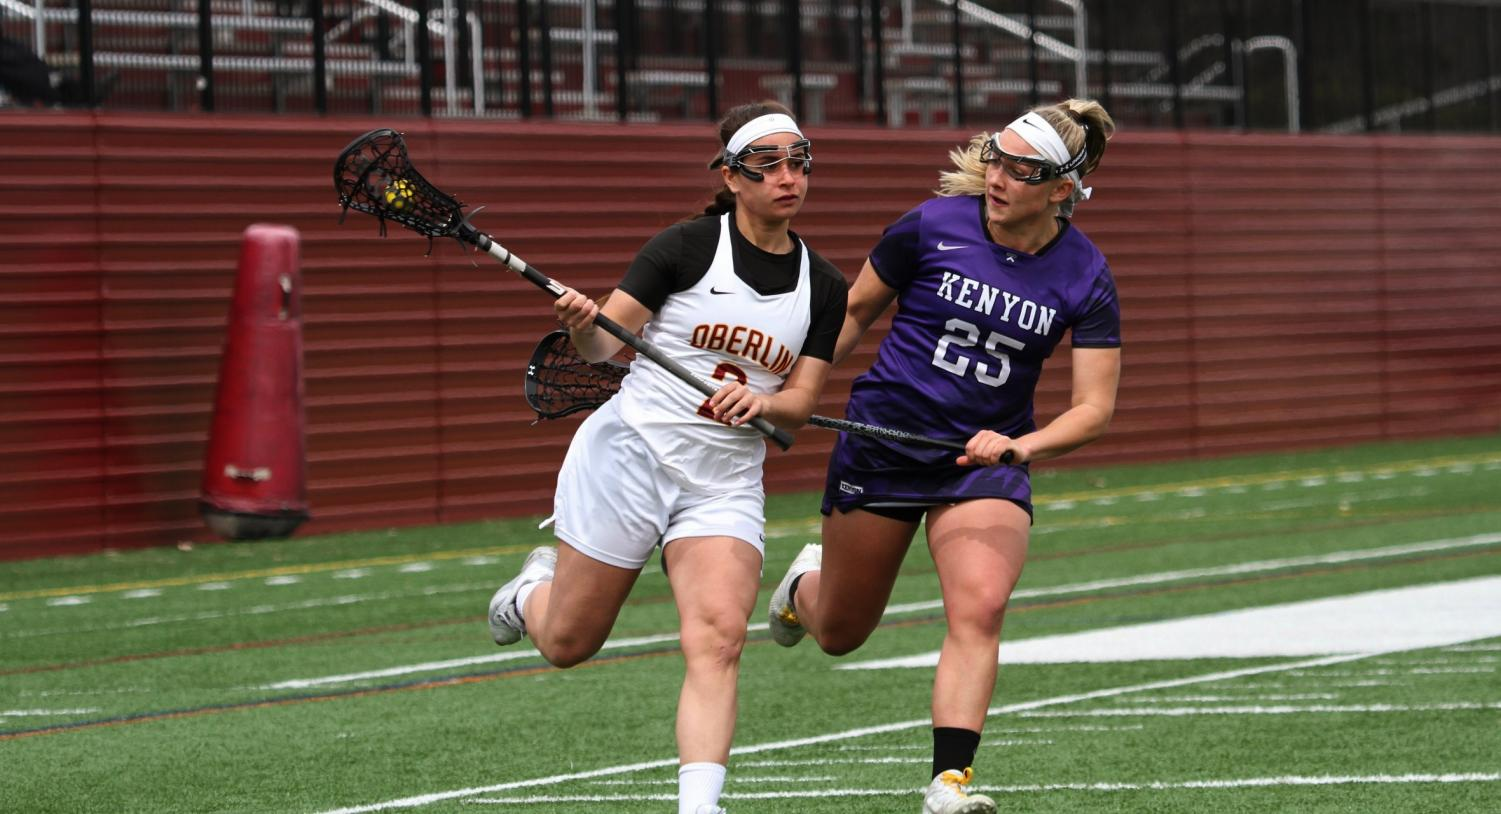 College senior and women's lacrosse player Sabrina Deleonibus was recruited to play basketball at Oberlin, but quit after her first year to join the women's lacrosse team. She is now one of the Yeowomen's biggest offensive threats and a leader on the team.